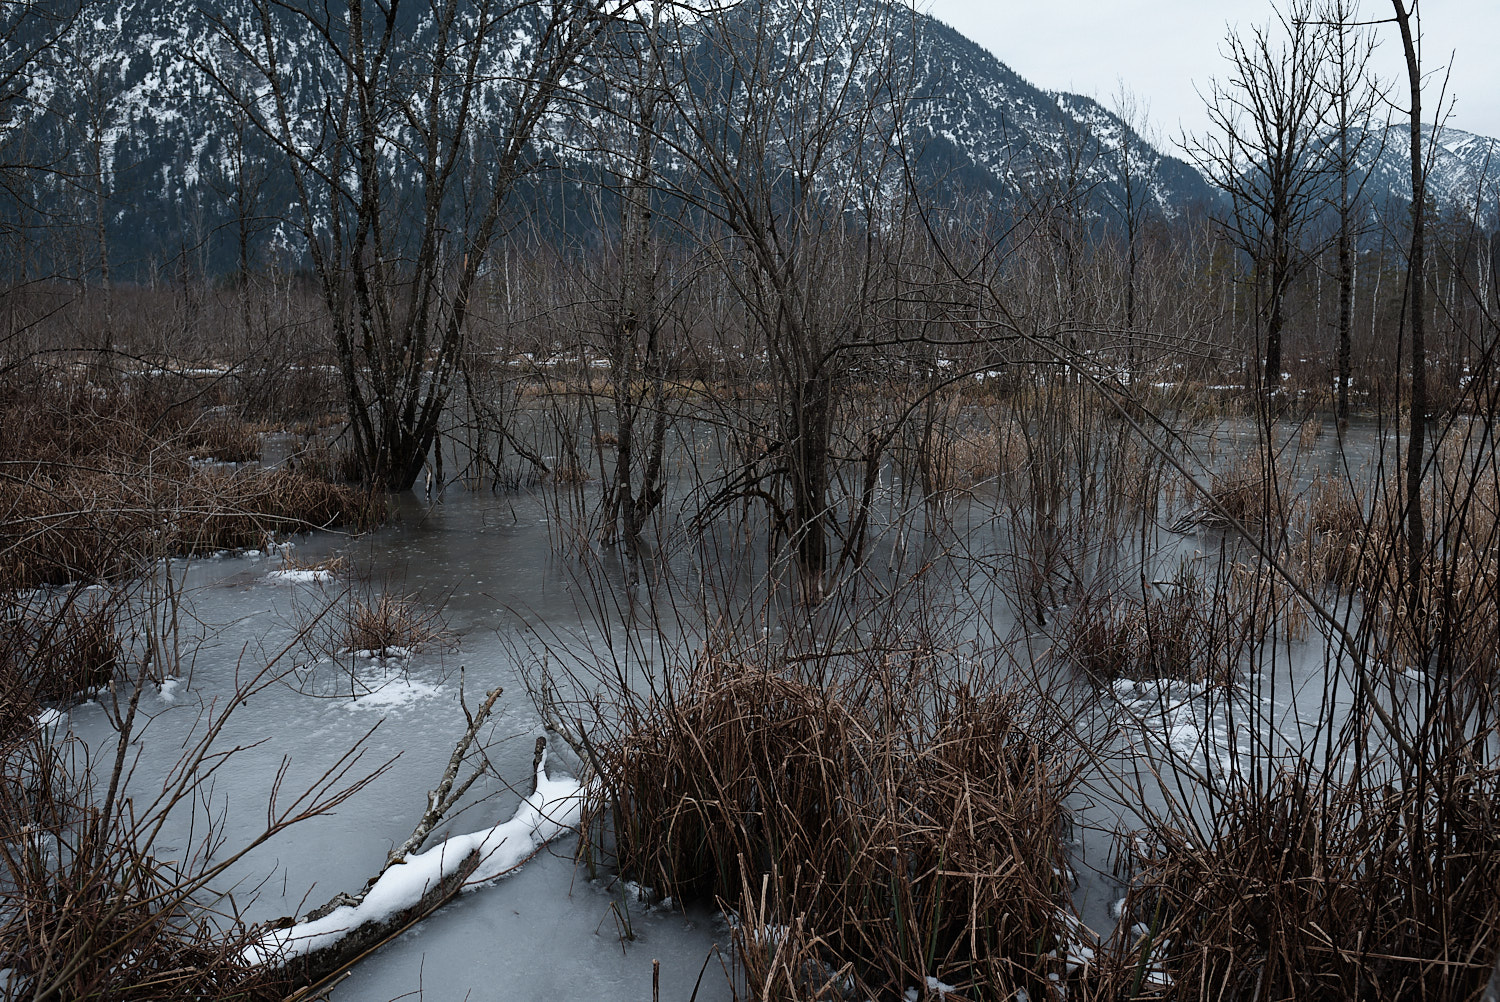 Graswangtal, Oberammergau, Bavaria, view towards the west accross the frozen wetlands of the sources of the river Ammer in an overcast day of January